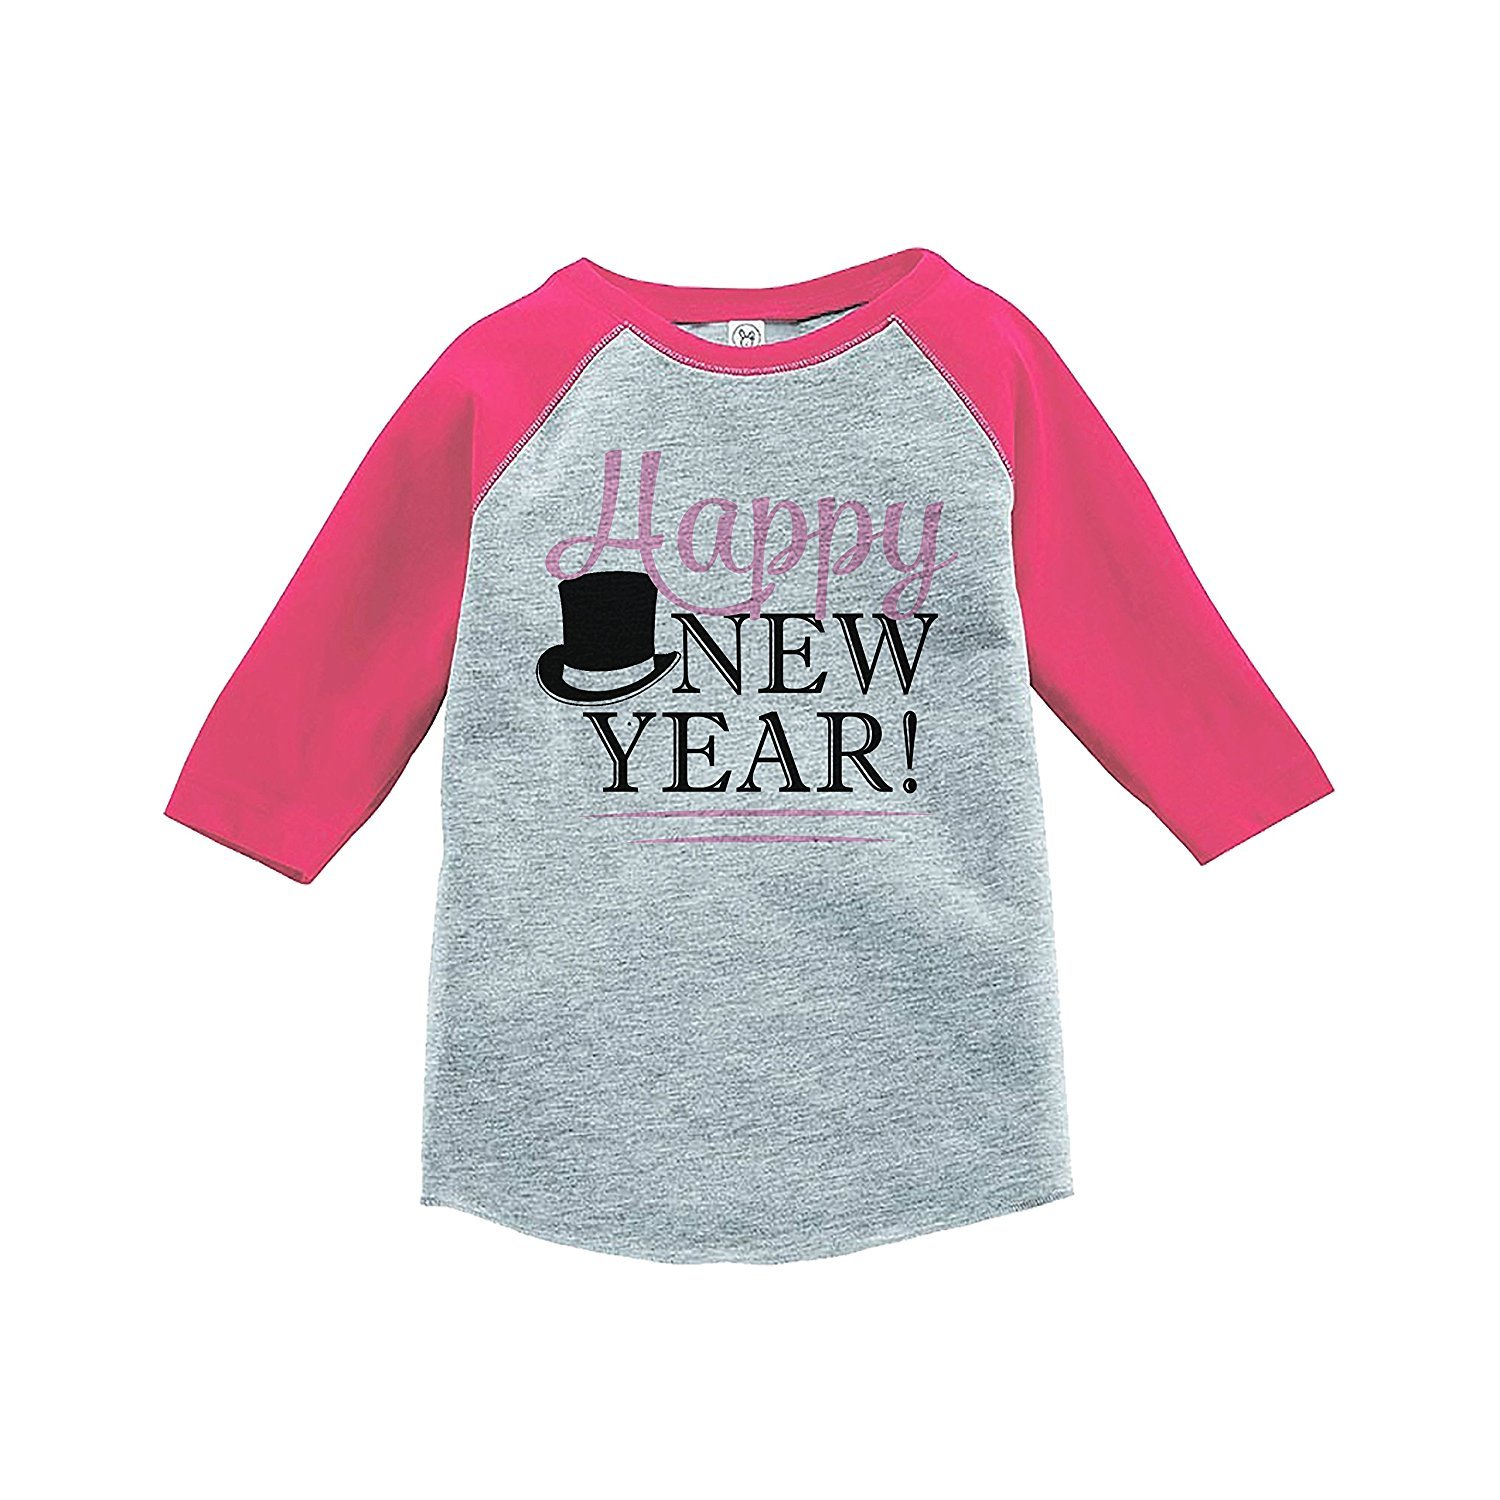 7 ate 9 Apparel Kids Happy New Year's Eve Pink Baseball Tee - 3T